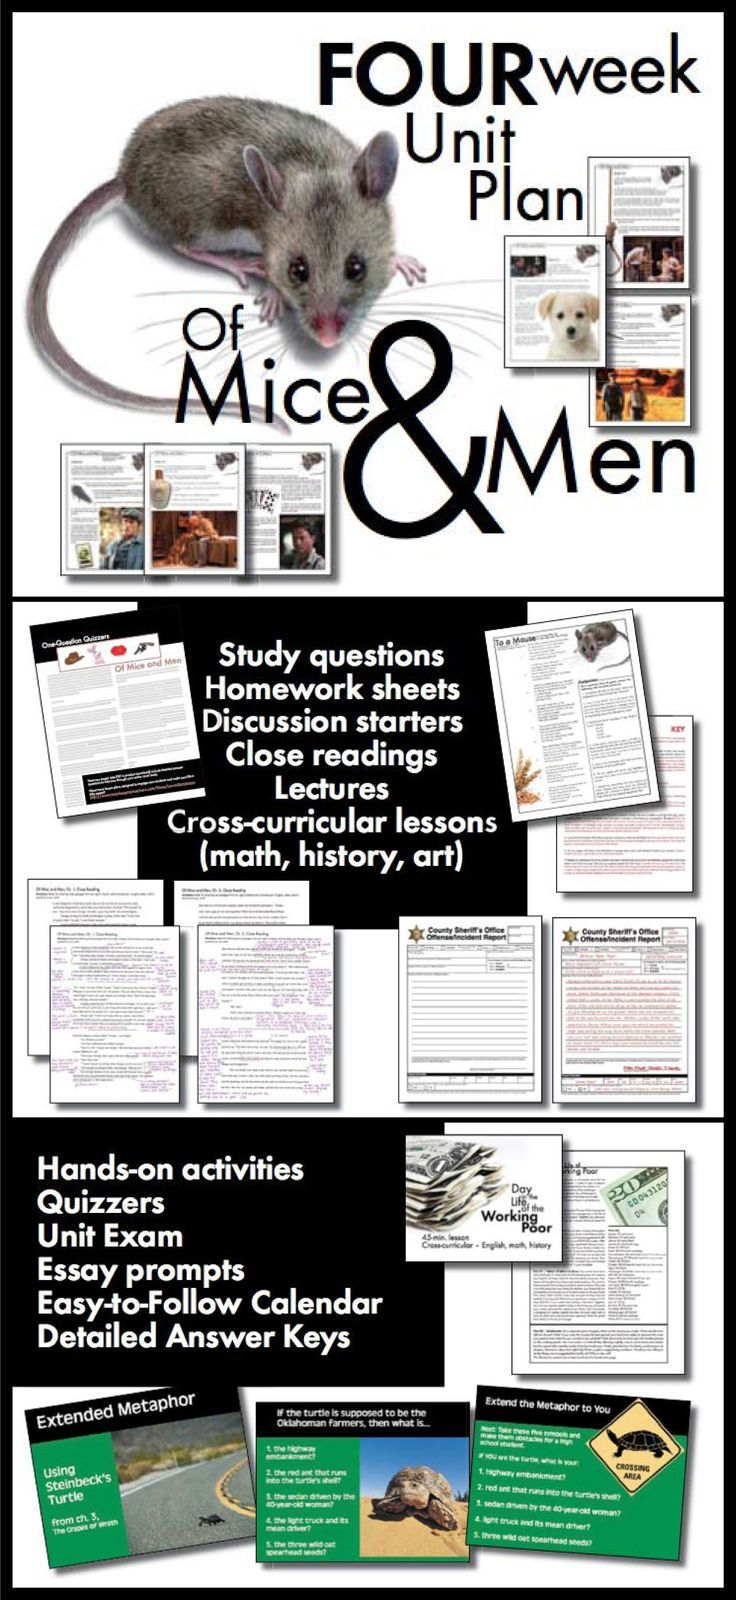 best images about classroom of mice and men enjoy this massive bundle of beautifully designed materials that will take your class through four full